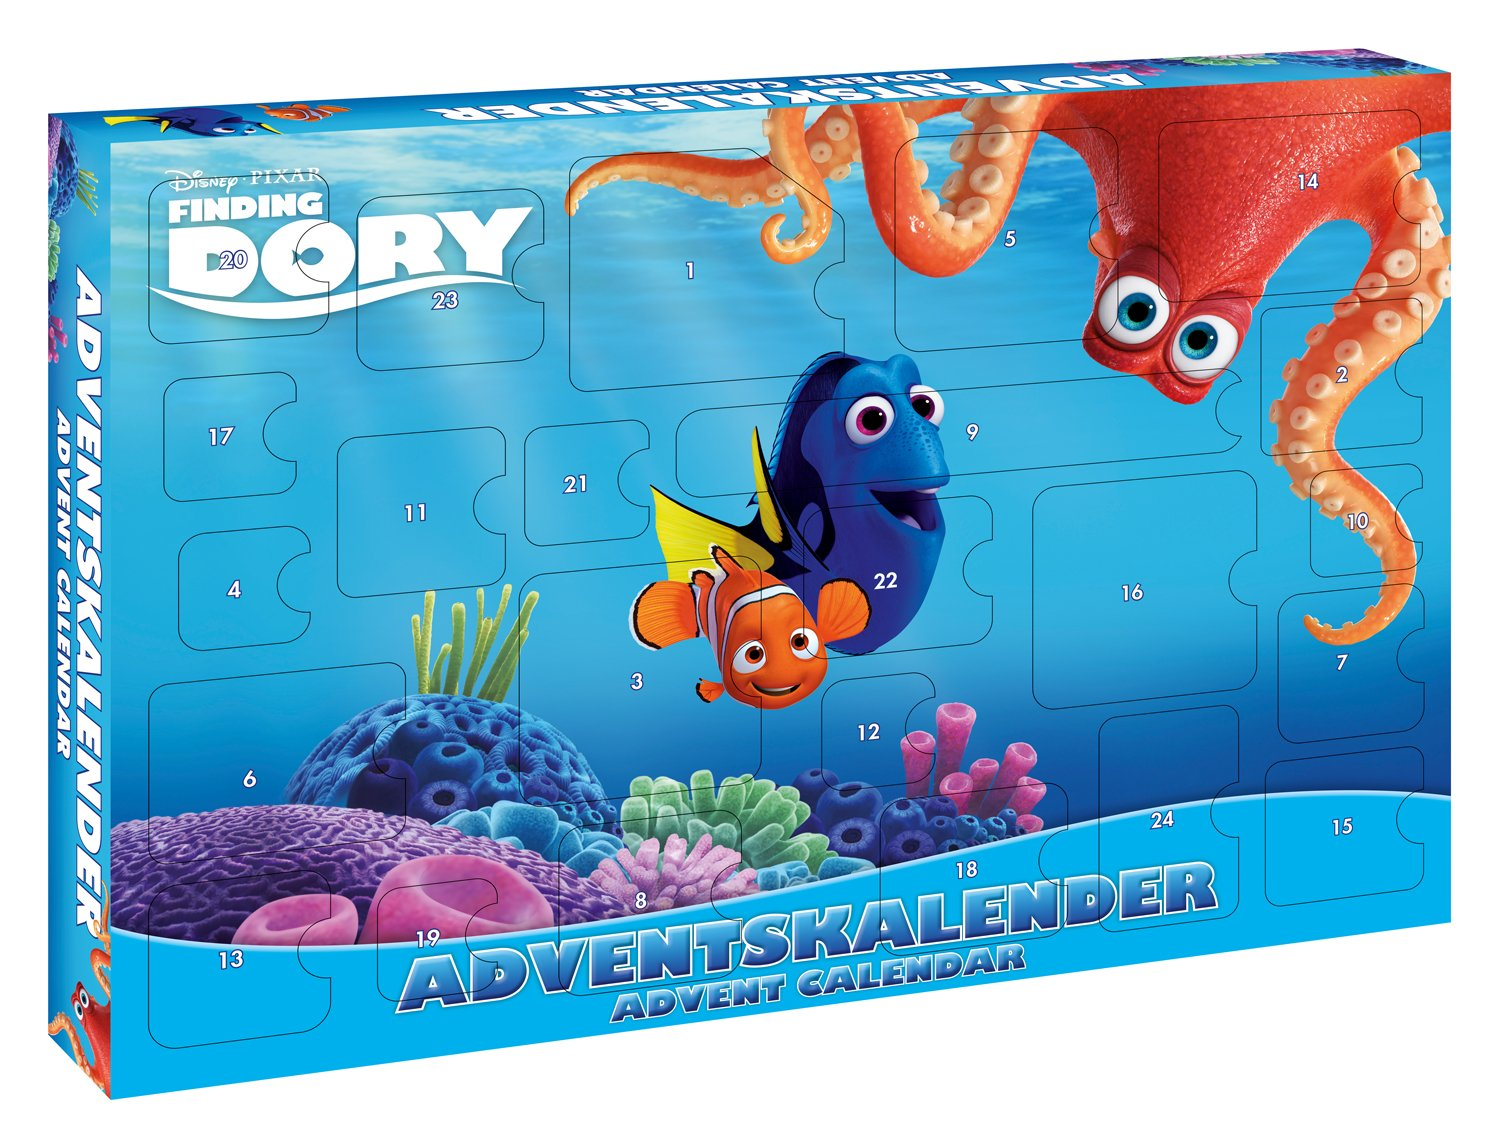 Craze 53974 – Calendario de Adviento Disney Pixar Finding Dory, Surtidos, Multicolor Craze_53974